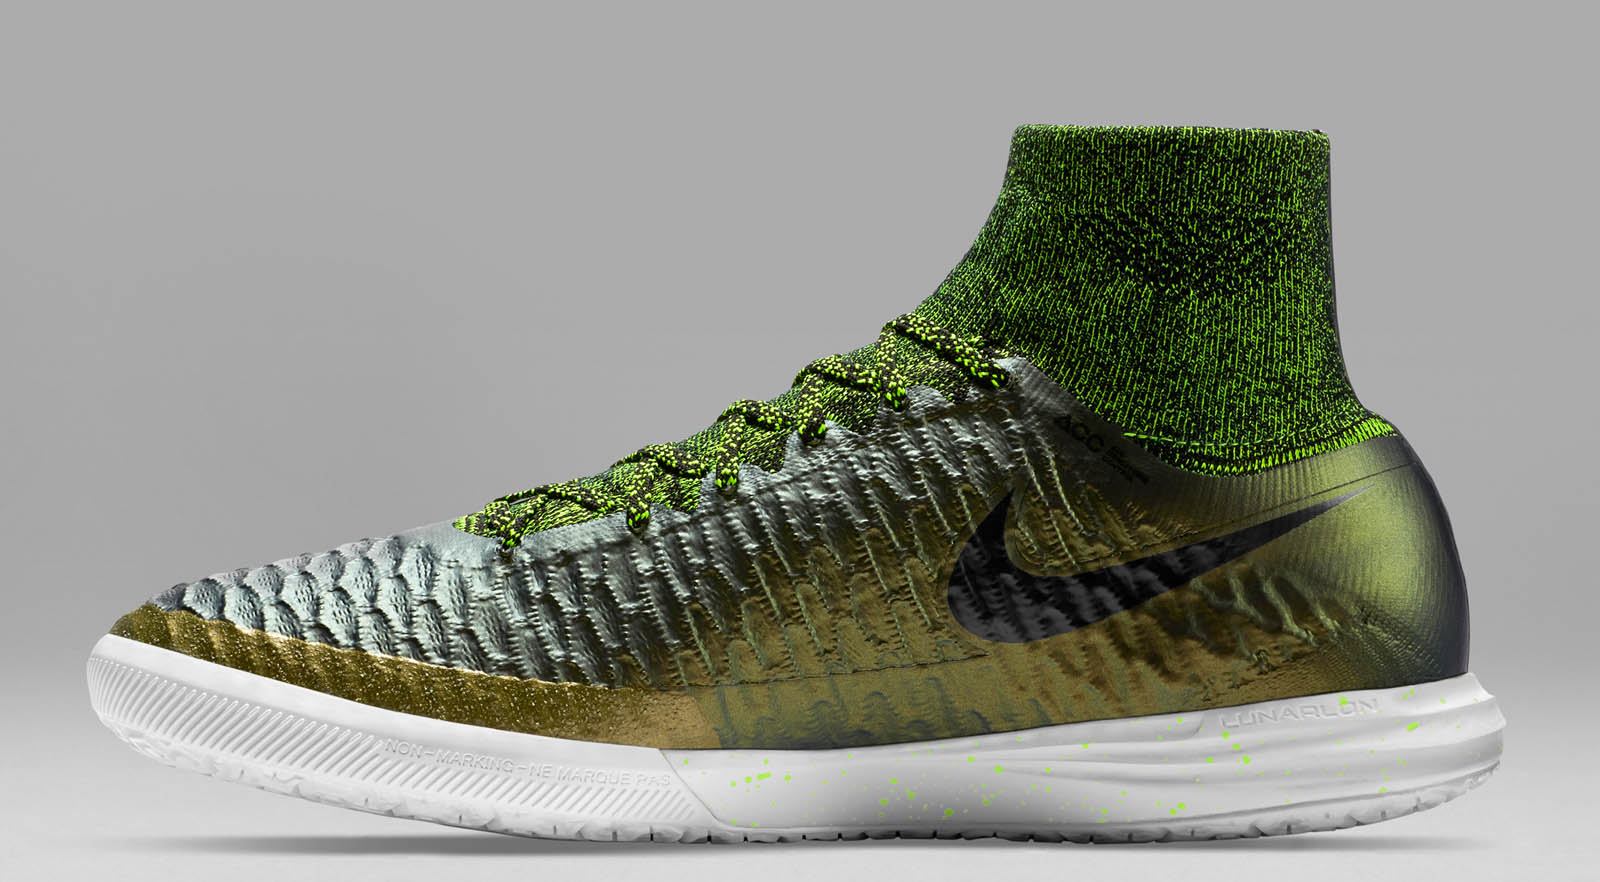 Gold Nike Magista X Proximo 2015 2016 Boots Released